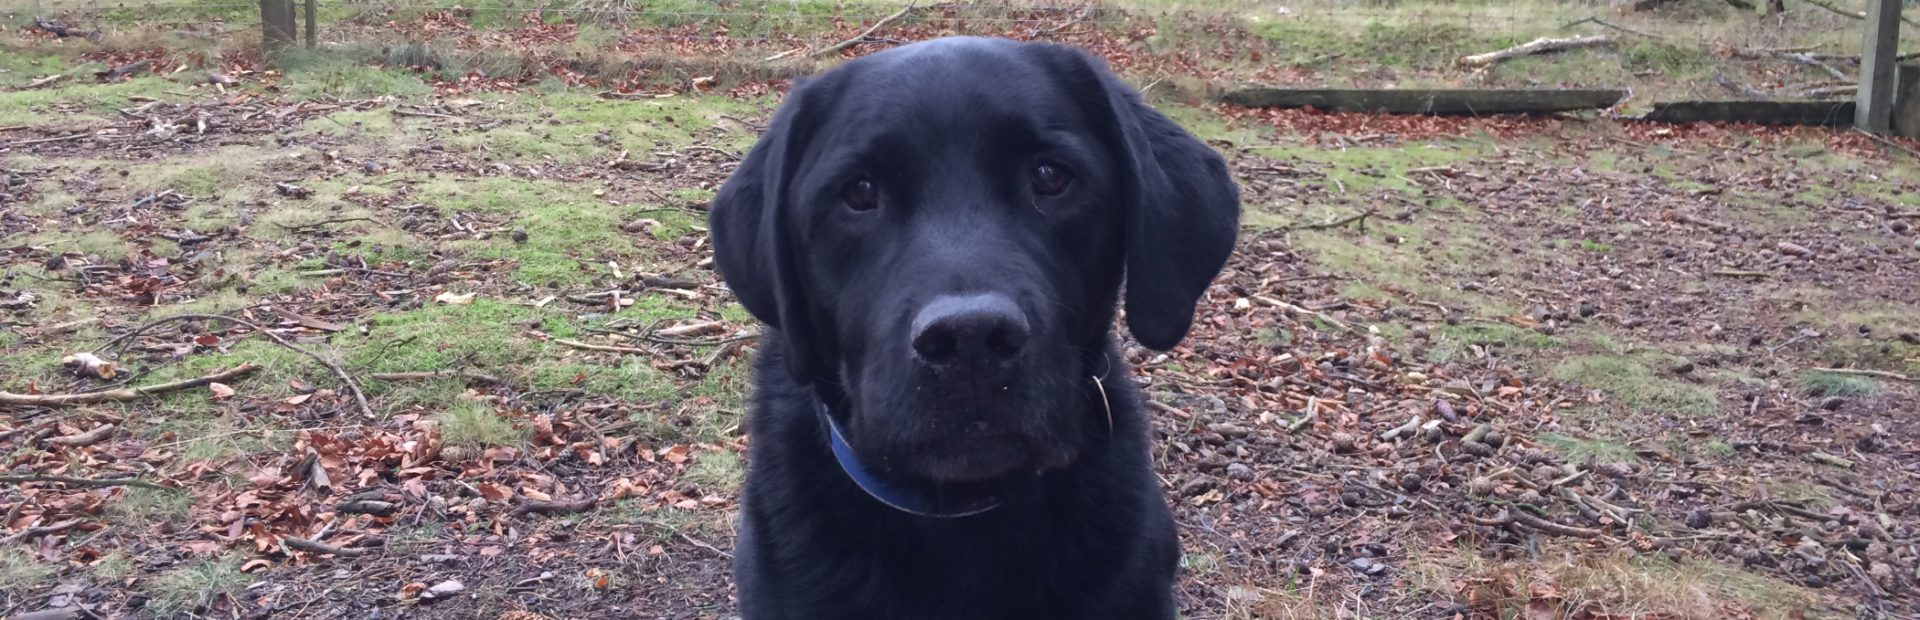 Gluten free by necessity, Dodgy Knees, Nurse, Blogger, Parkrunner, Bromptoneer Filofaxer Black lab owner (or does he own me?)